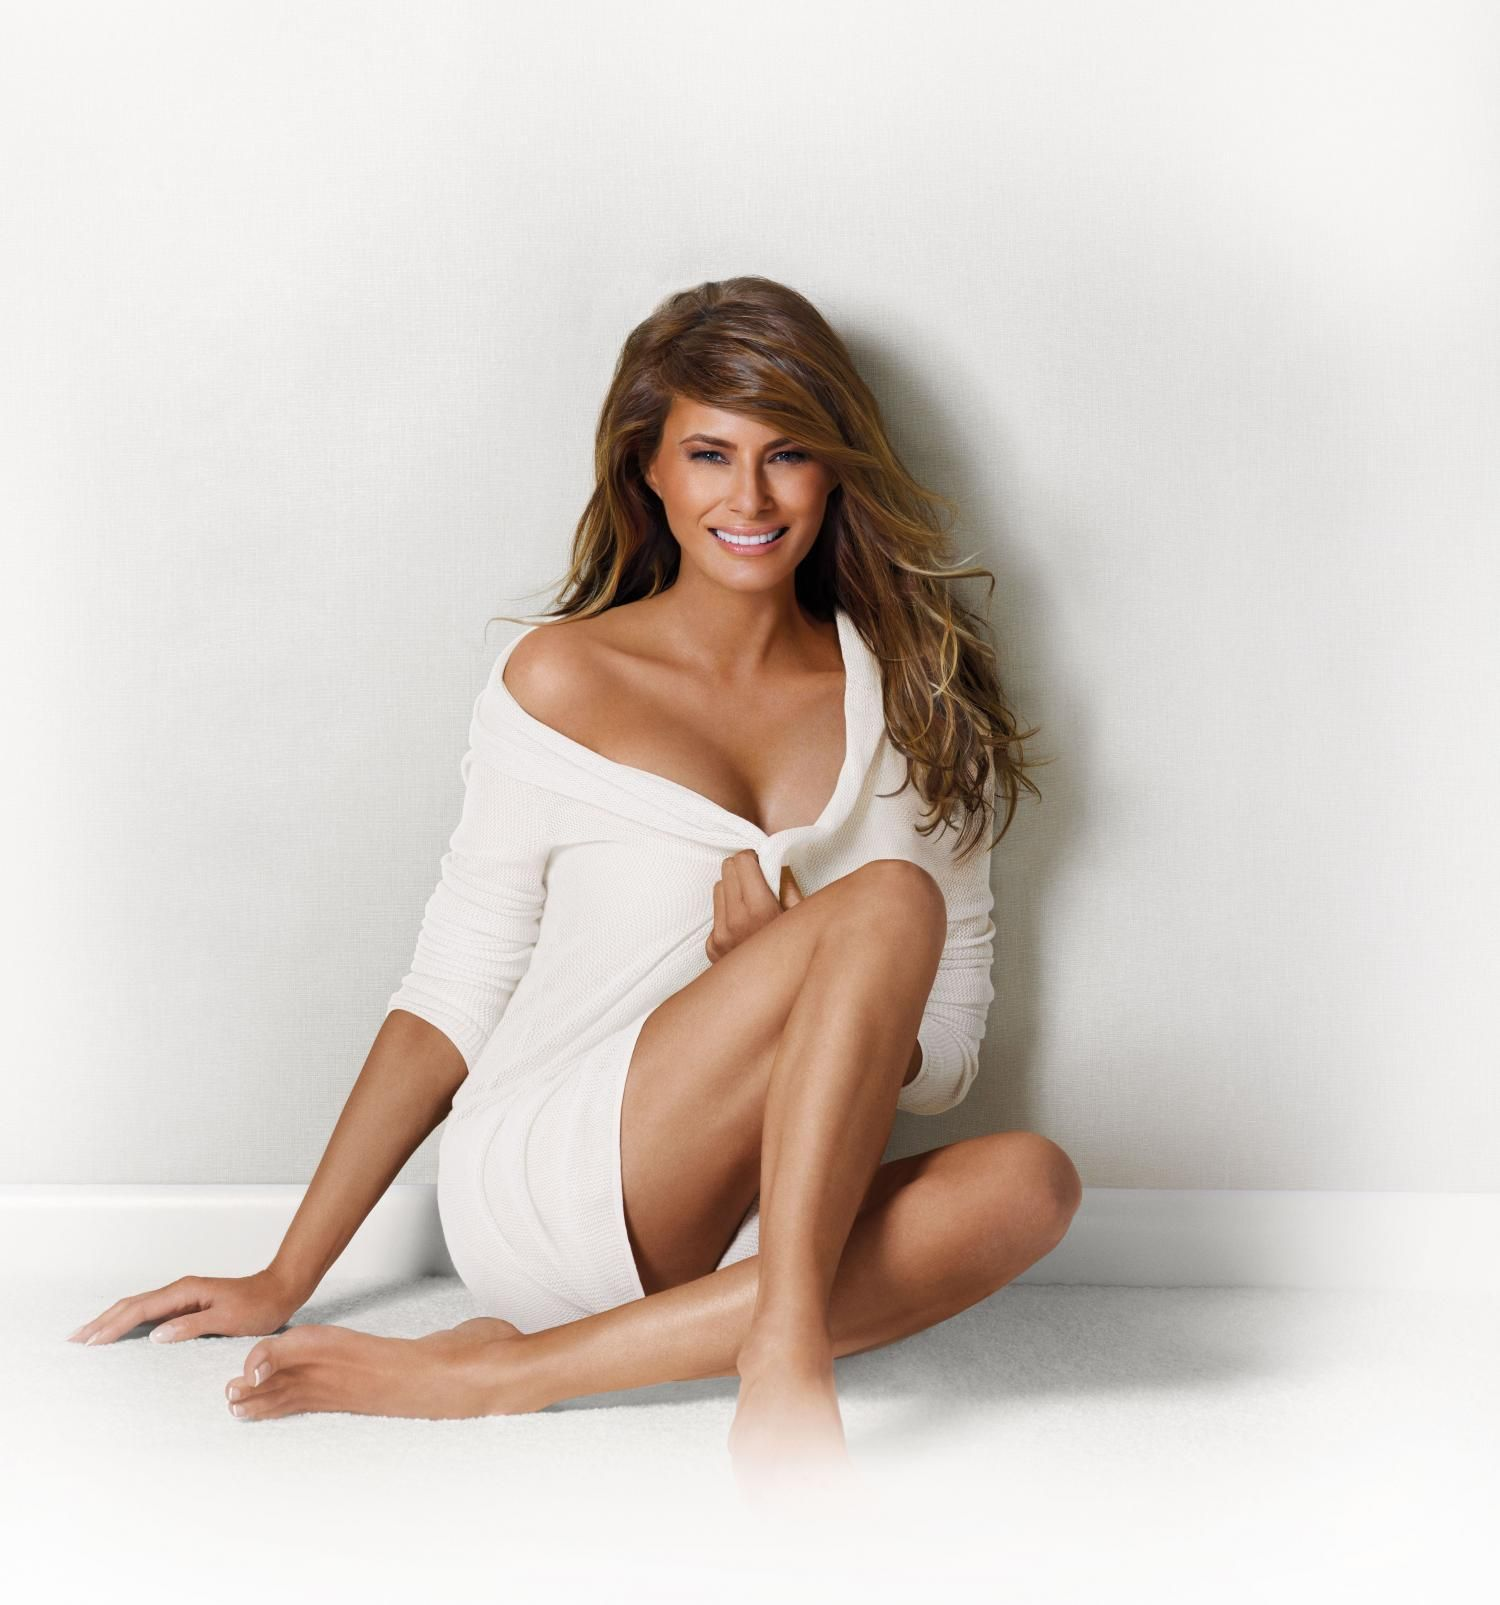 Melania Trump too sexy